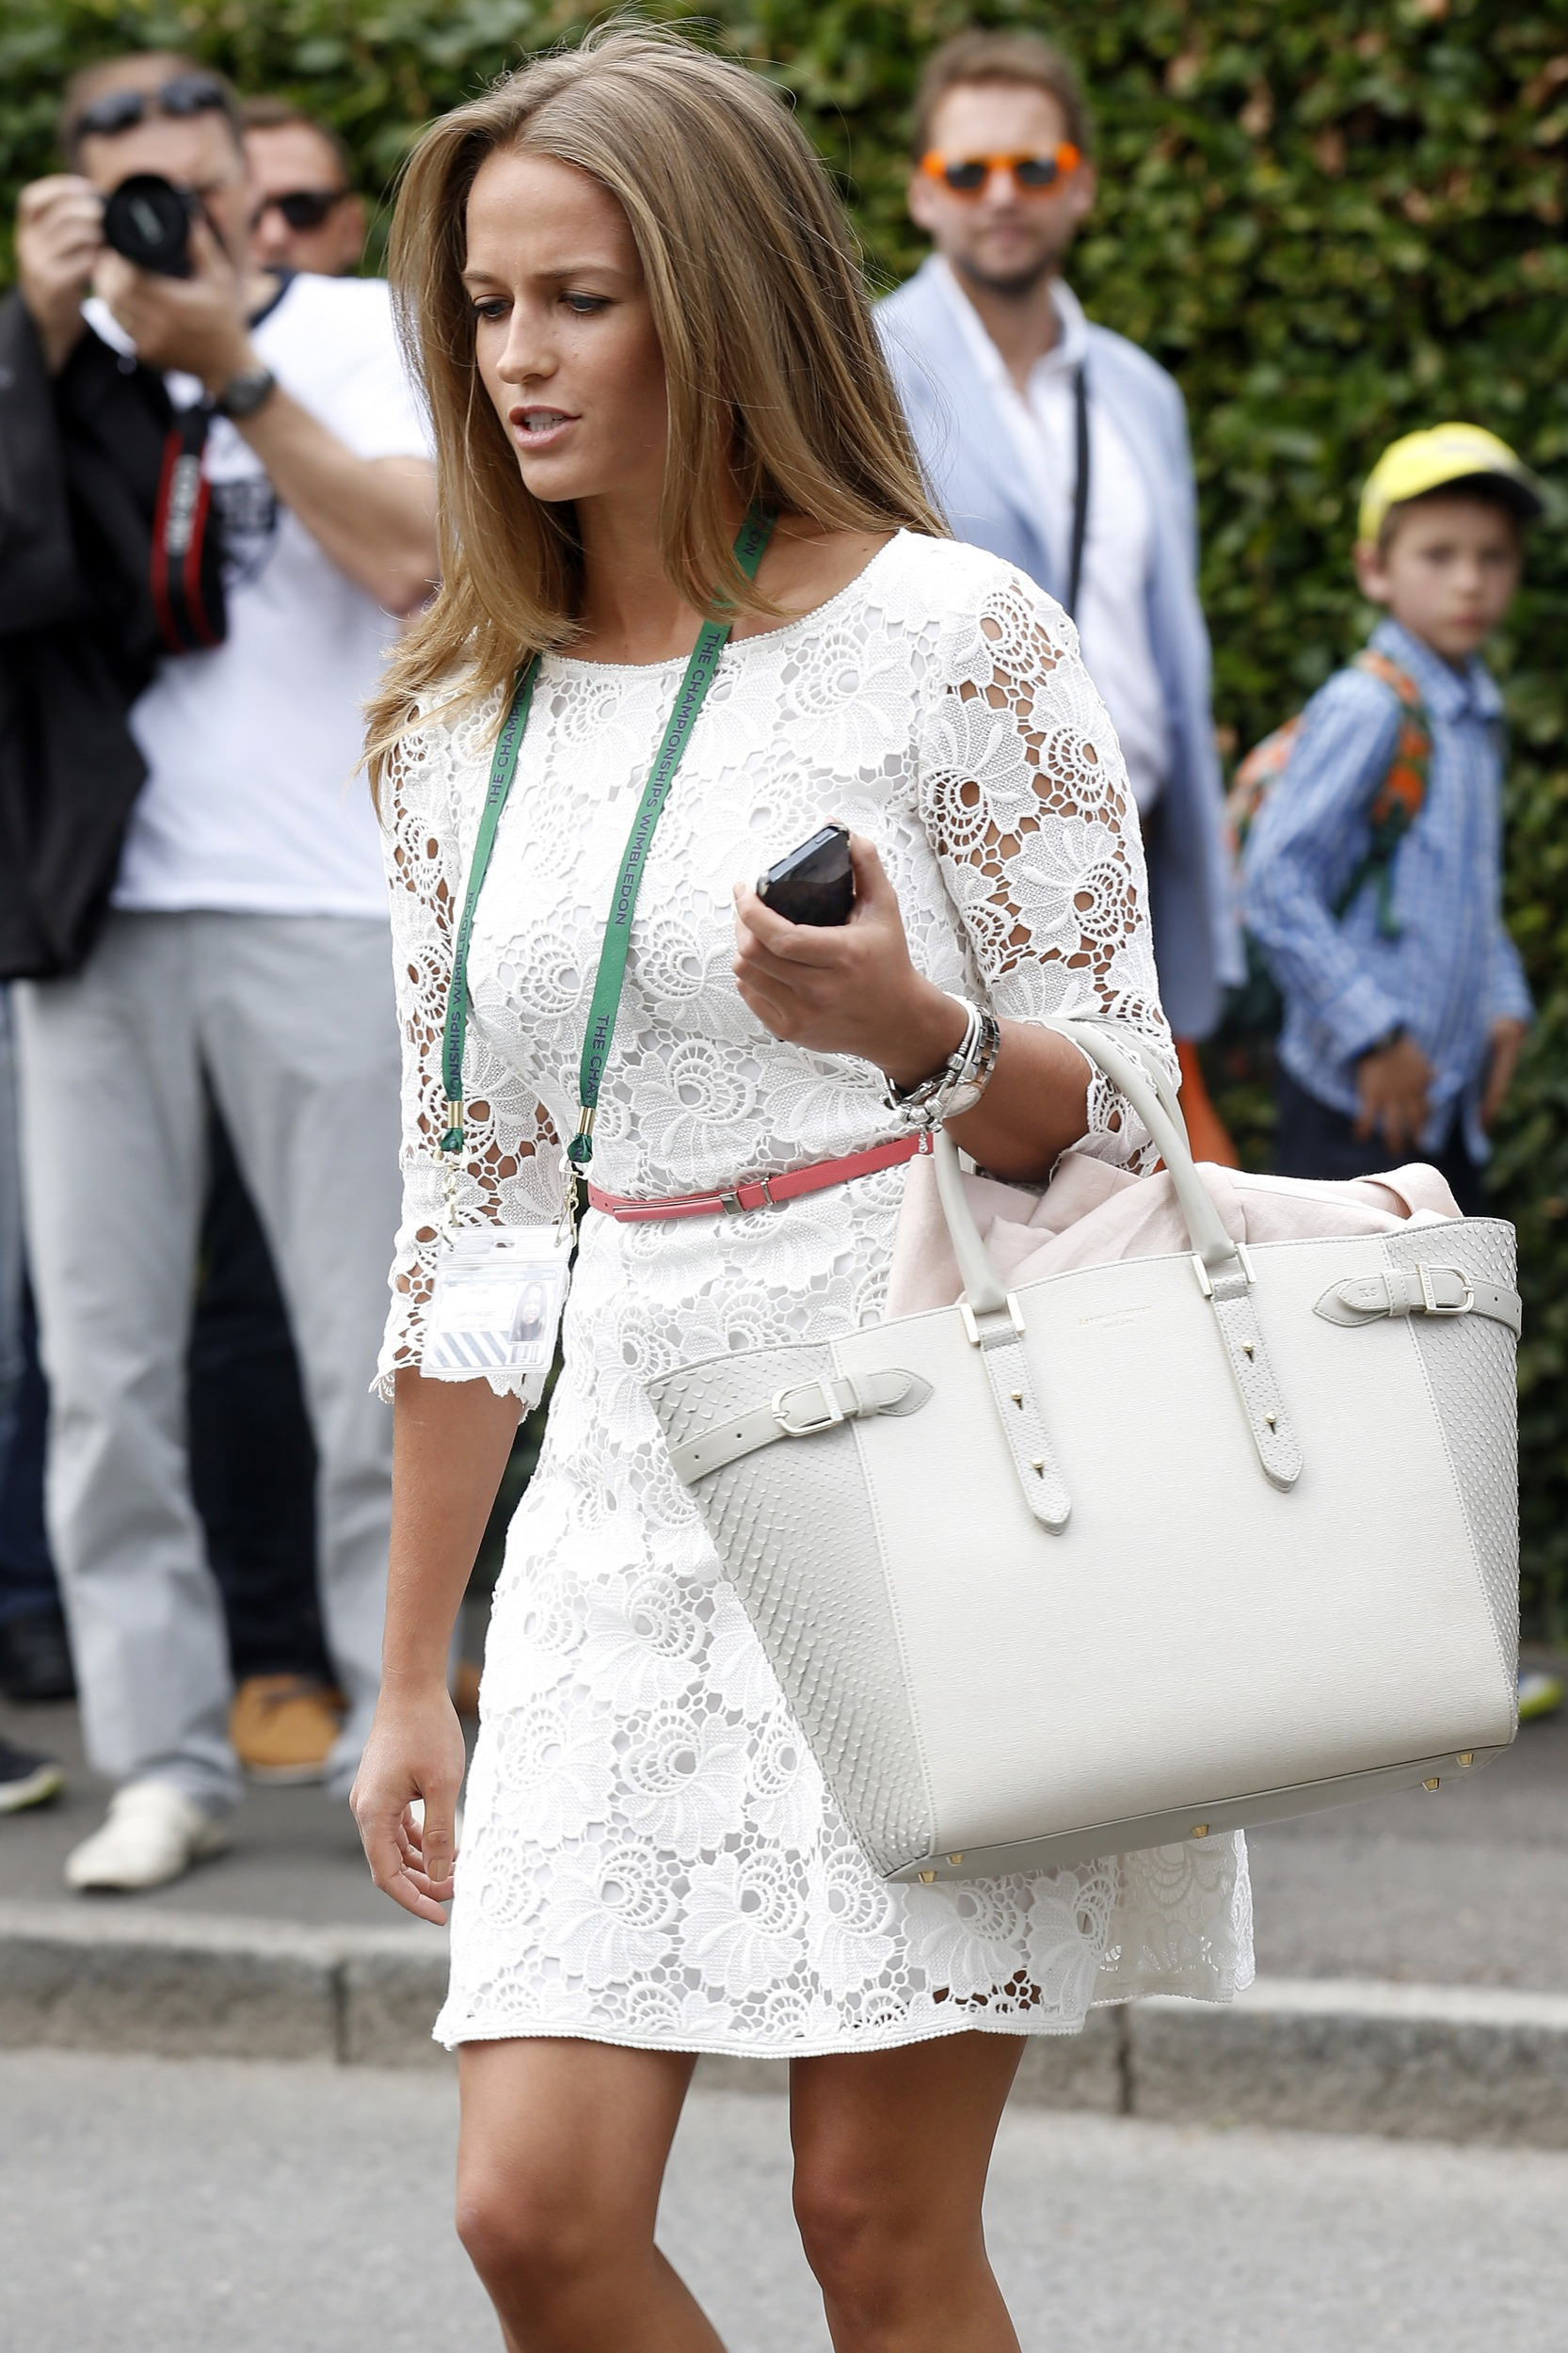 Kim Sears arrives for Day 1 of Wimbledon 2014 wearing a white lace Reiss dress.